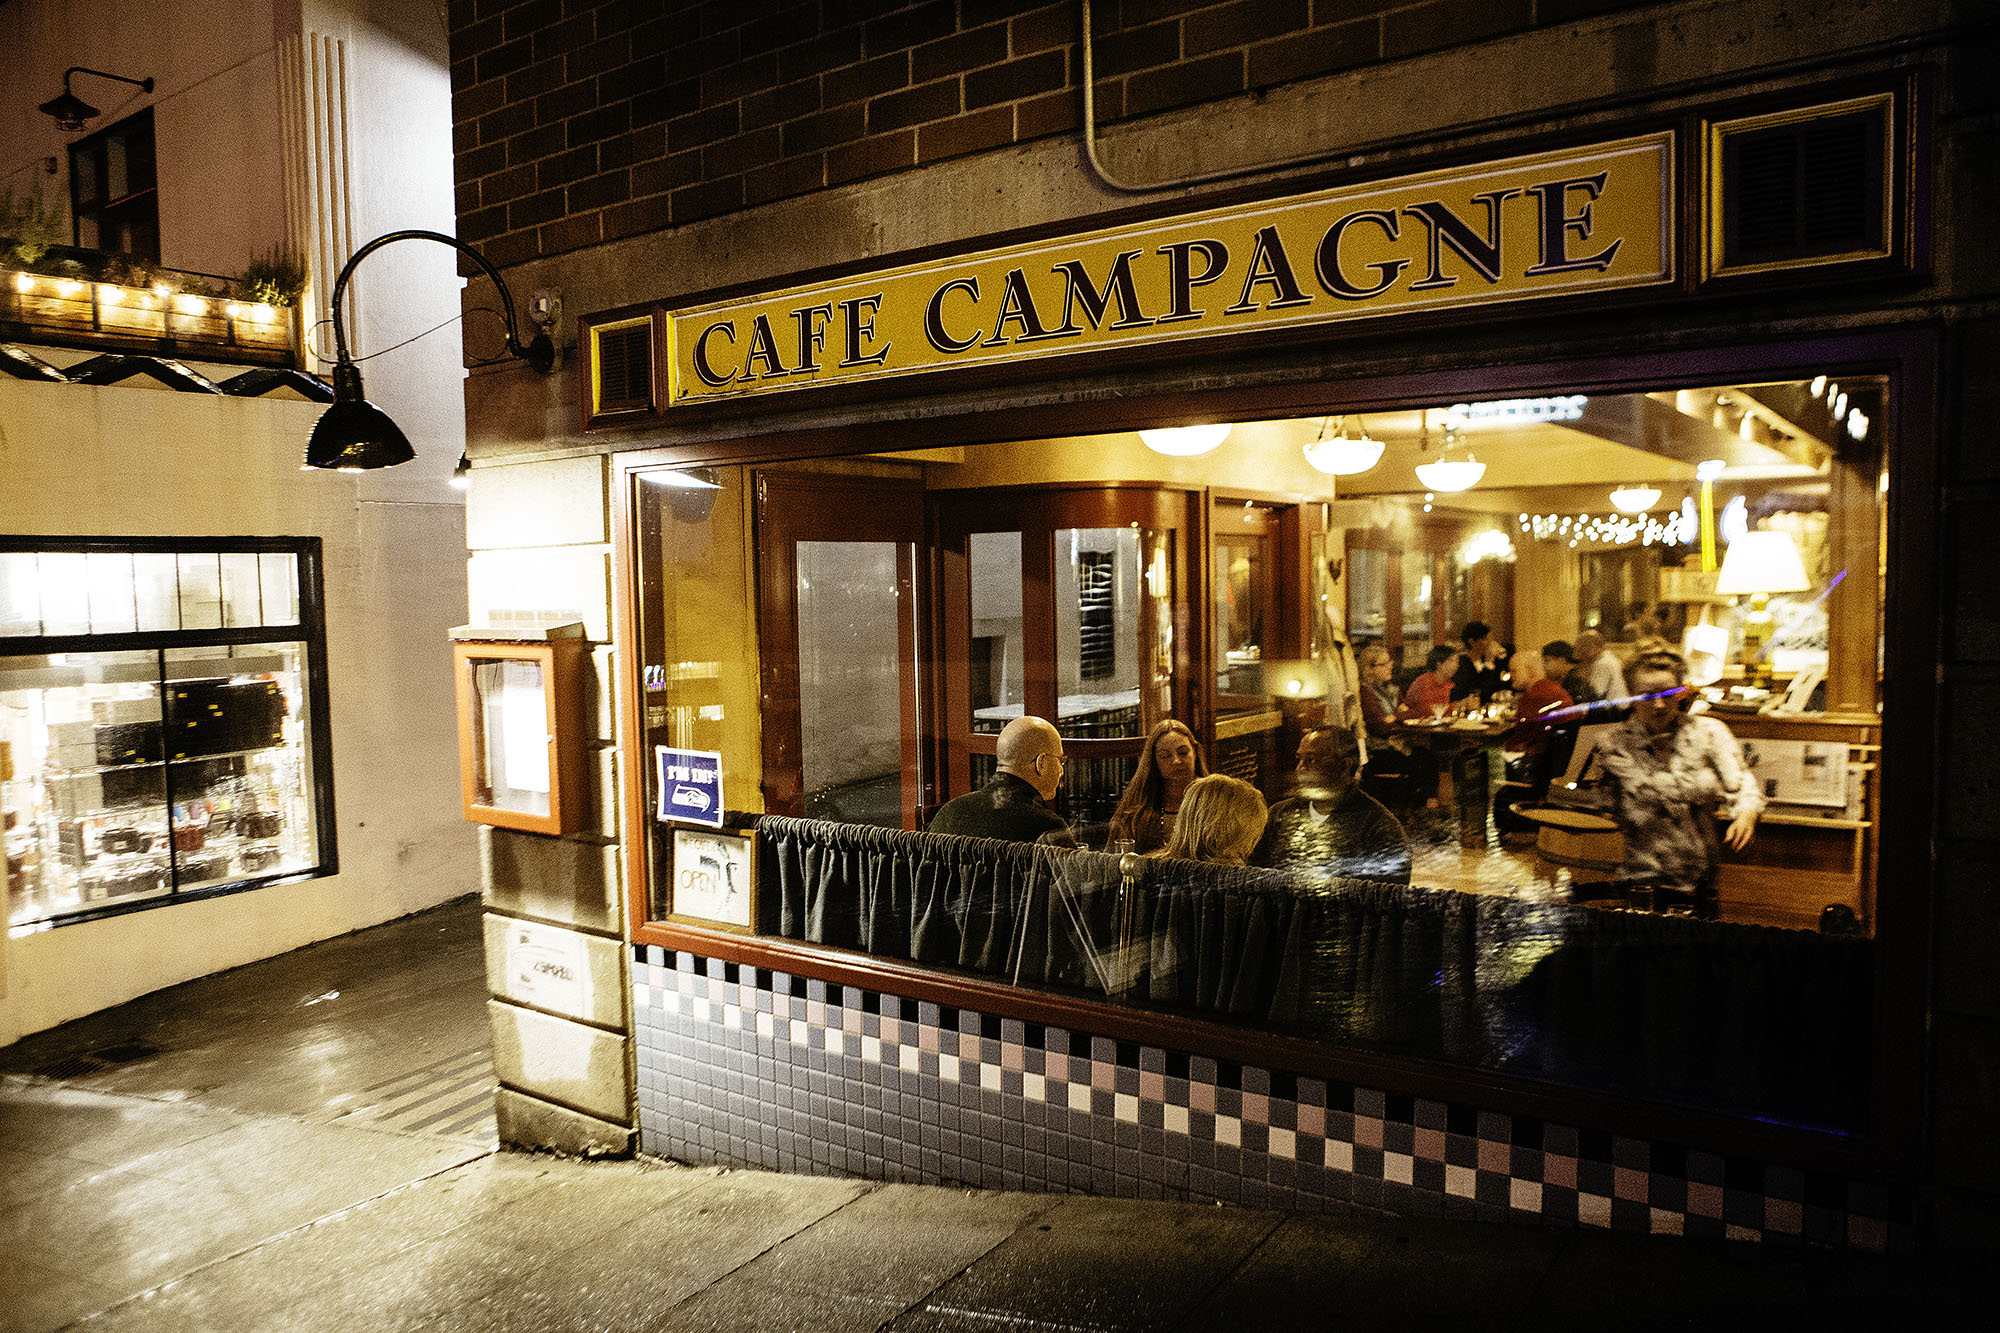 Eater Scenes: Cafe Campagne, Thursday at 7 p.m. - Eater Seattle